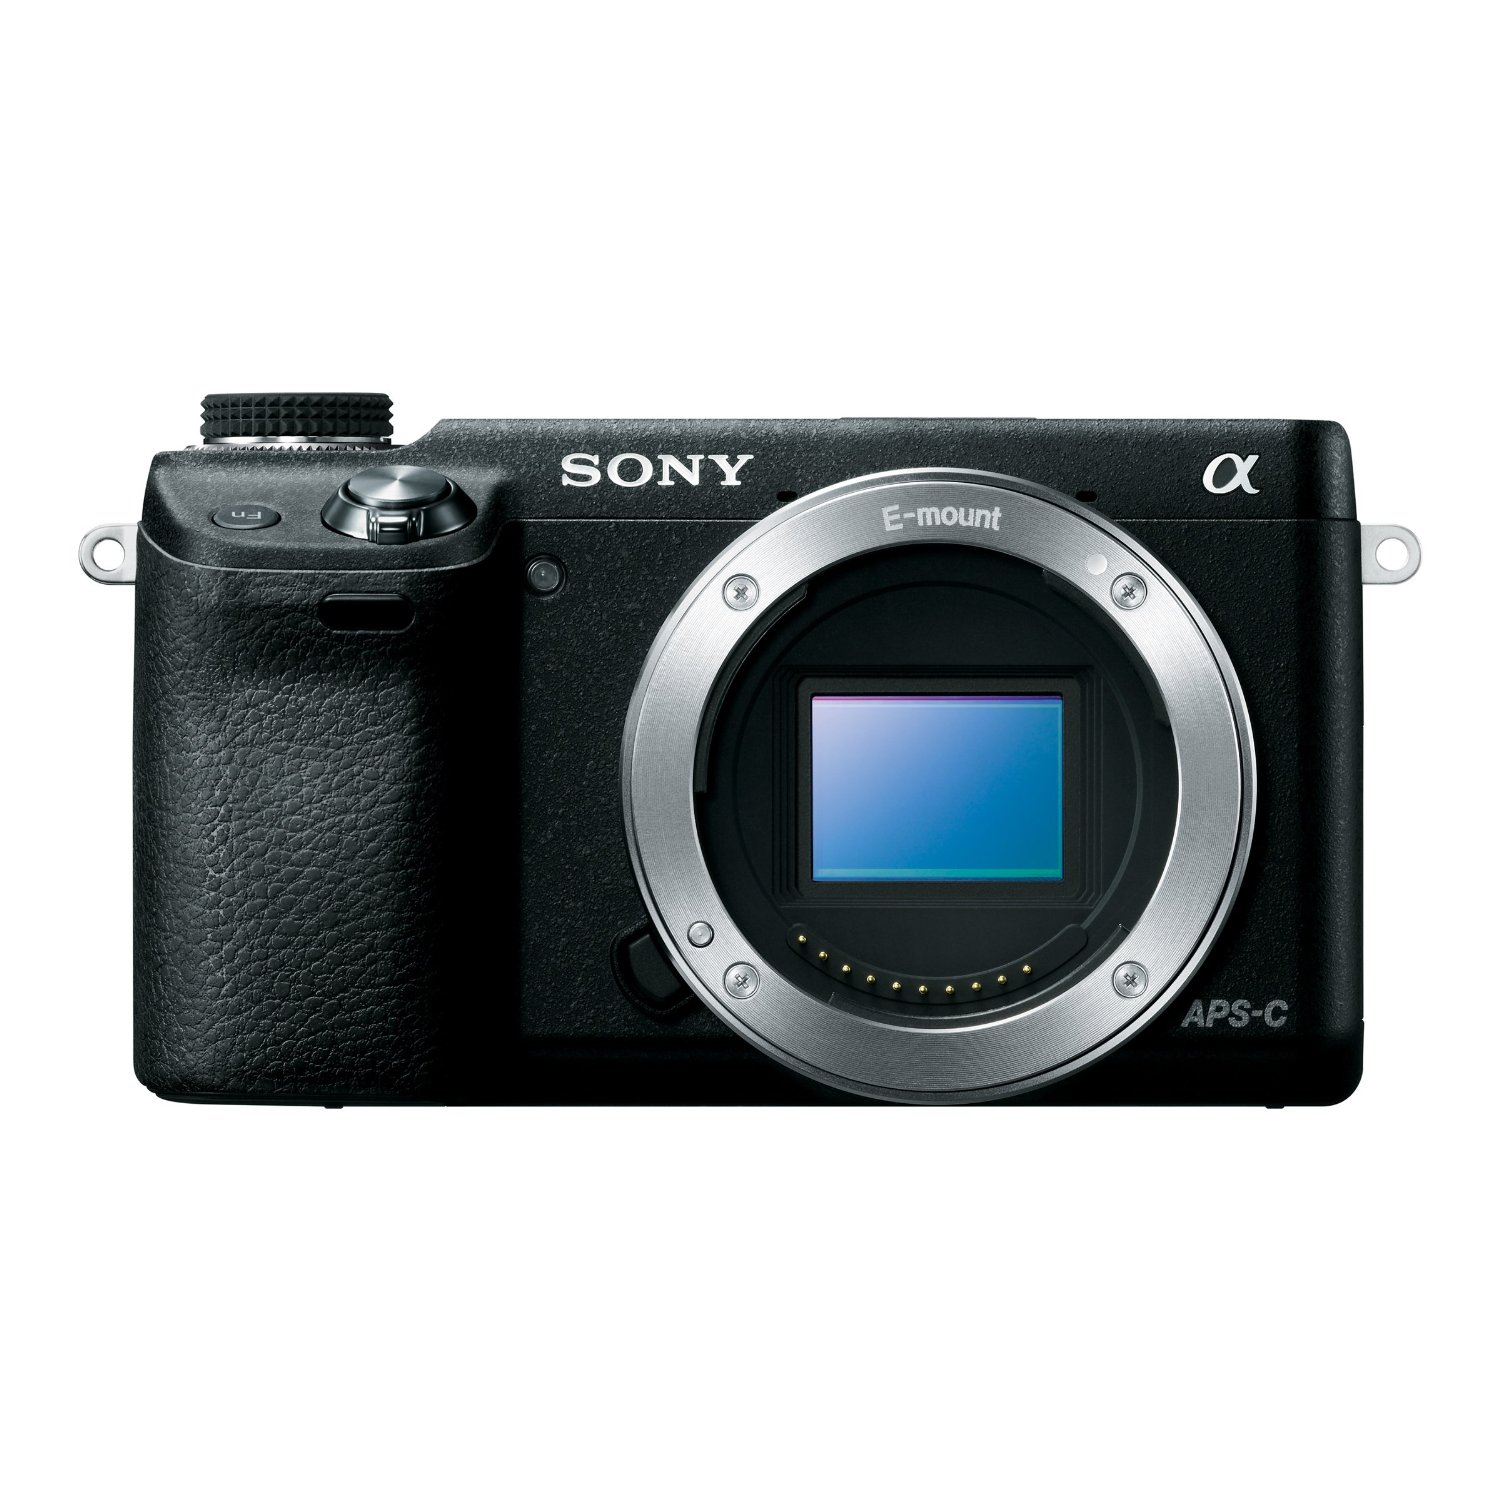 Best Canon Digital Camera For Travel